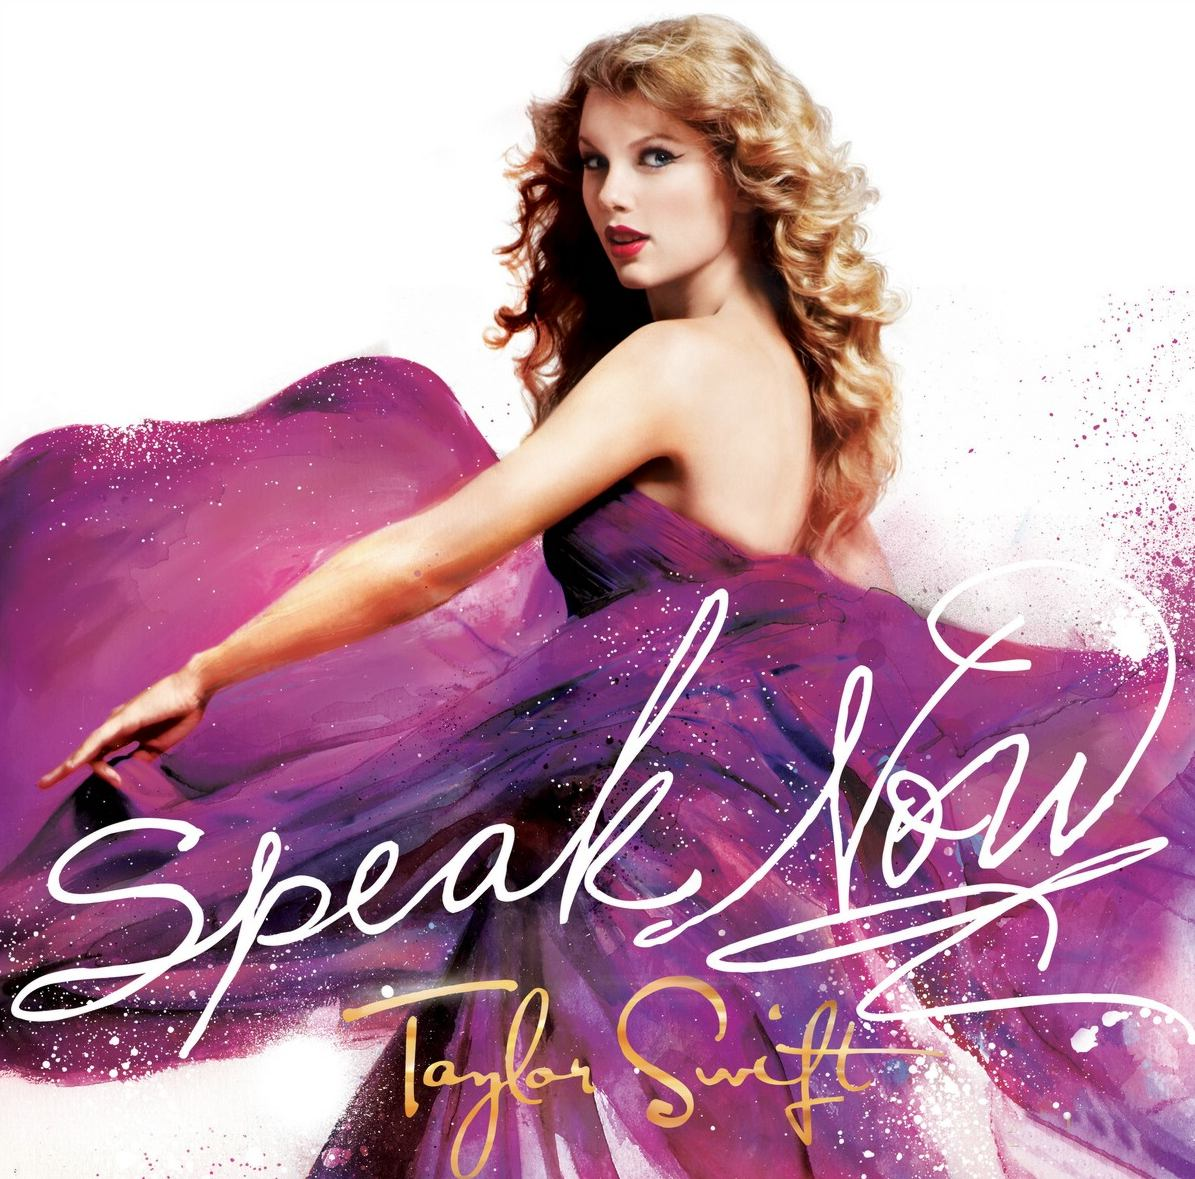 http://4.bp.blogspot.com/_znvhR0is8nc/THD6_-VQc3I/AAAAAAAAM_E/DF4SNhCKJgw/s1600/taylor-swift-speak-now-01.jpg